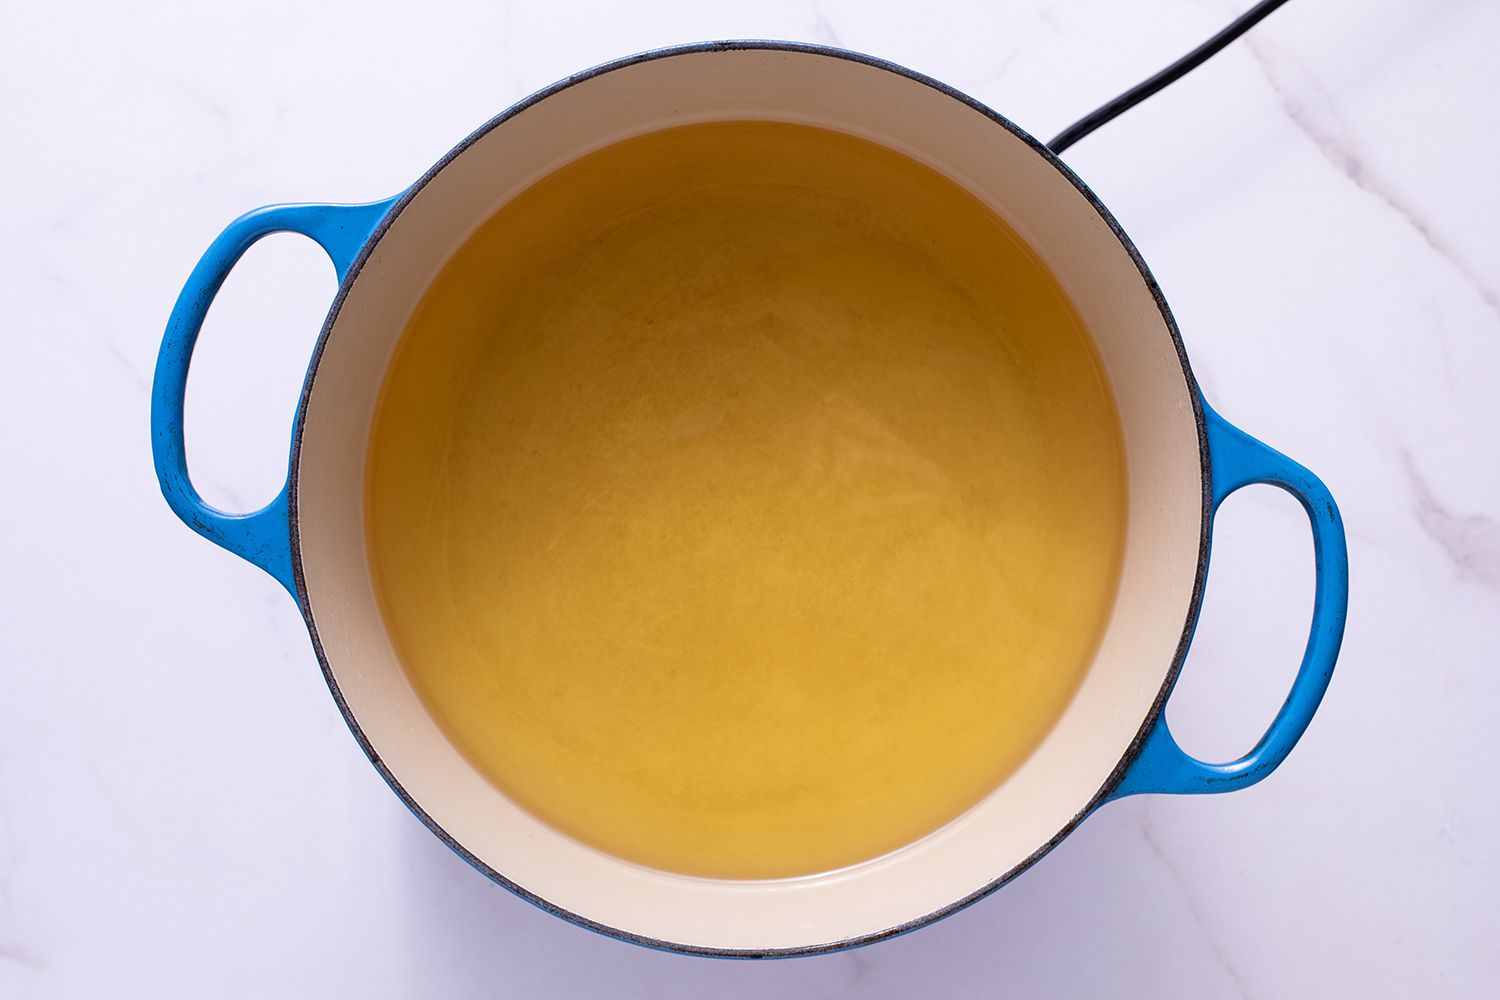 Dutch oven with oil